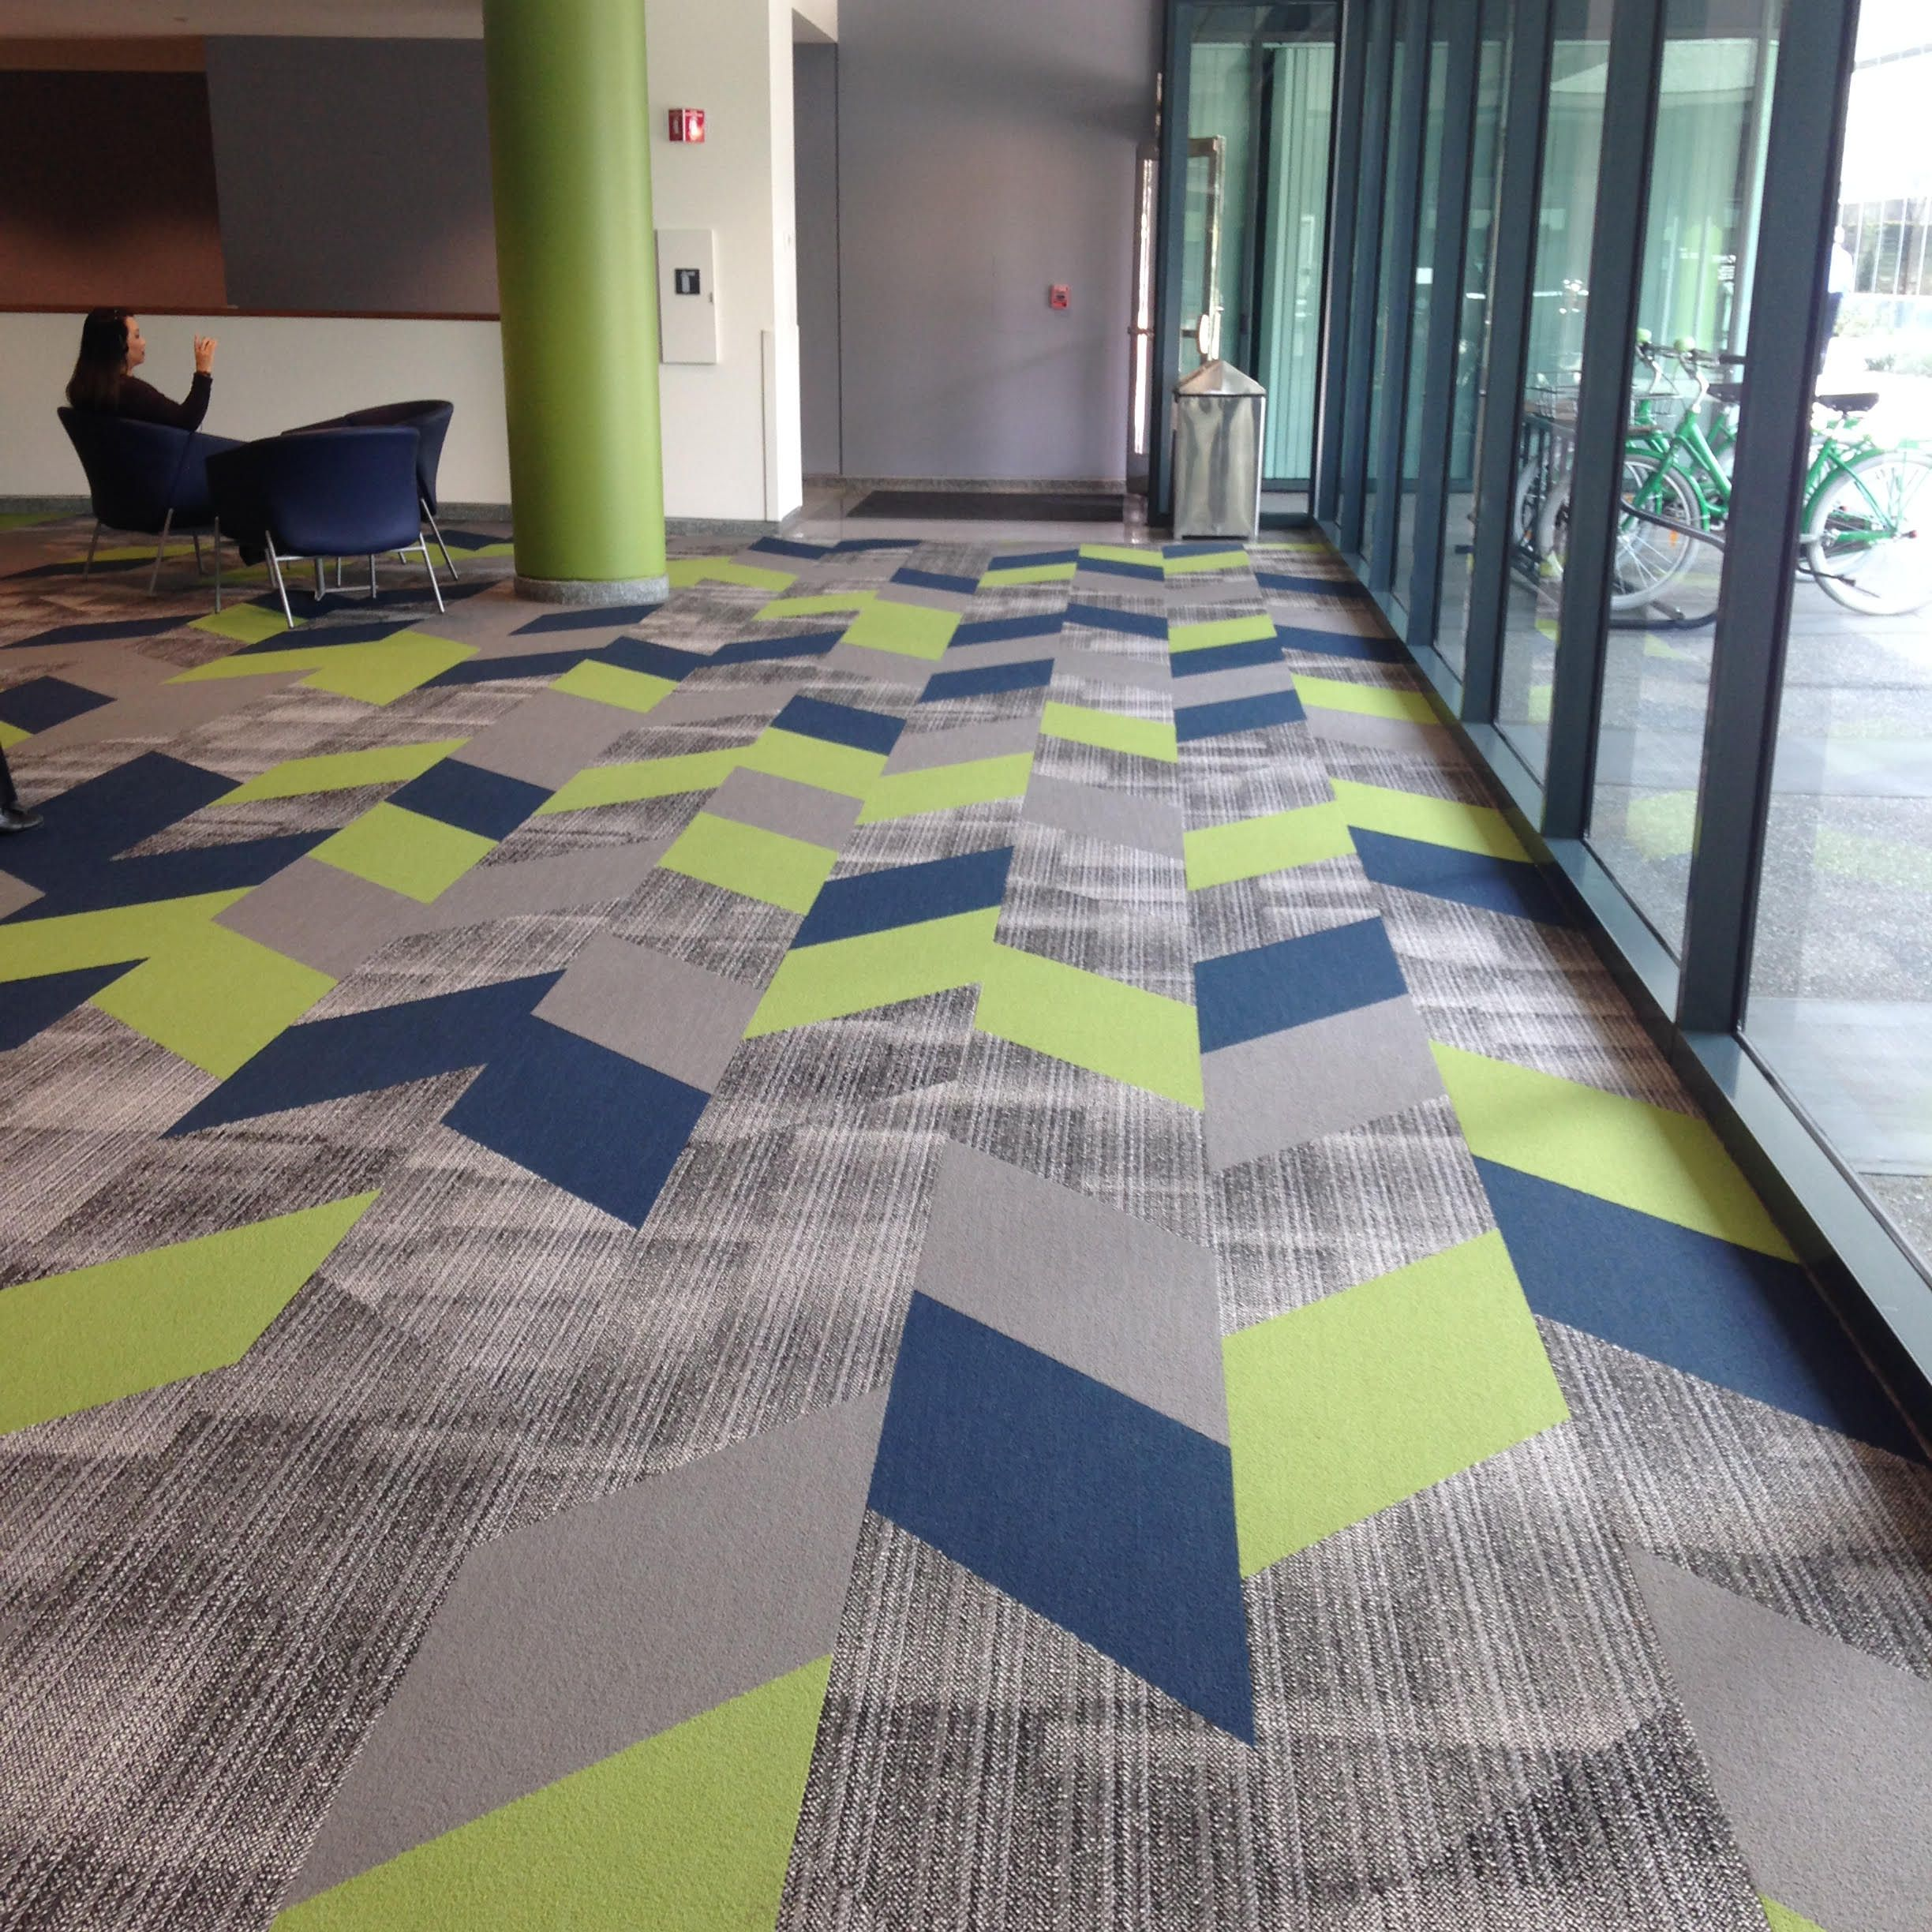 Use Of Mixed Materials Carpet Tile And Resilient In A Public Gathering Space Of College Dormi Carpet Tiles Design Wallpaper Interior Design Carpet Tiles Office